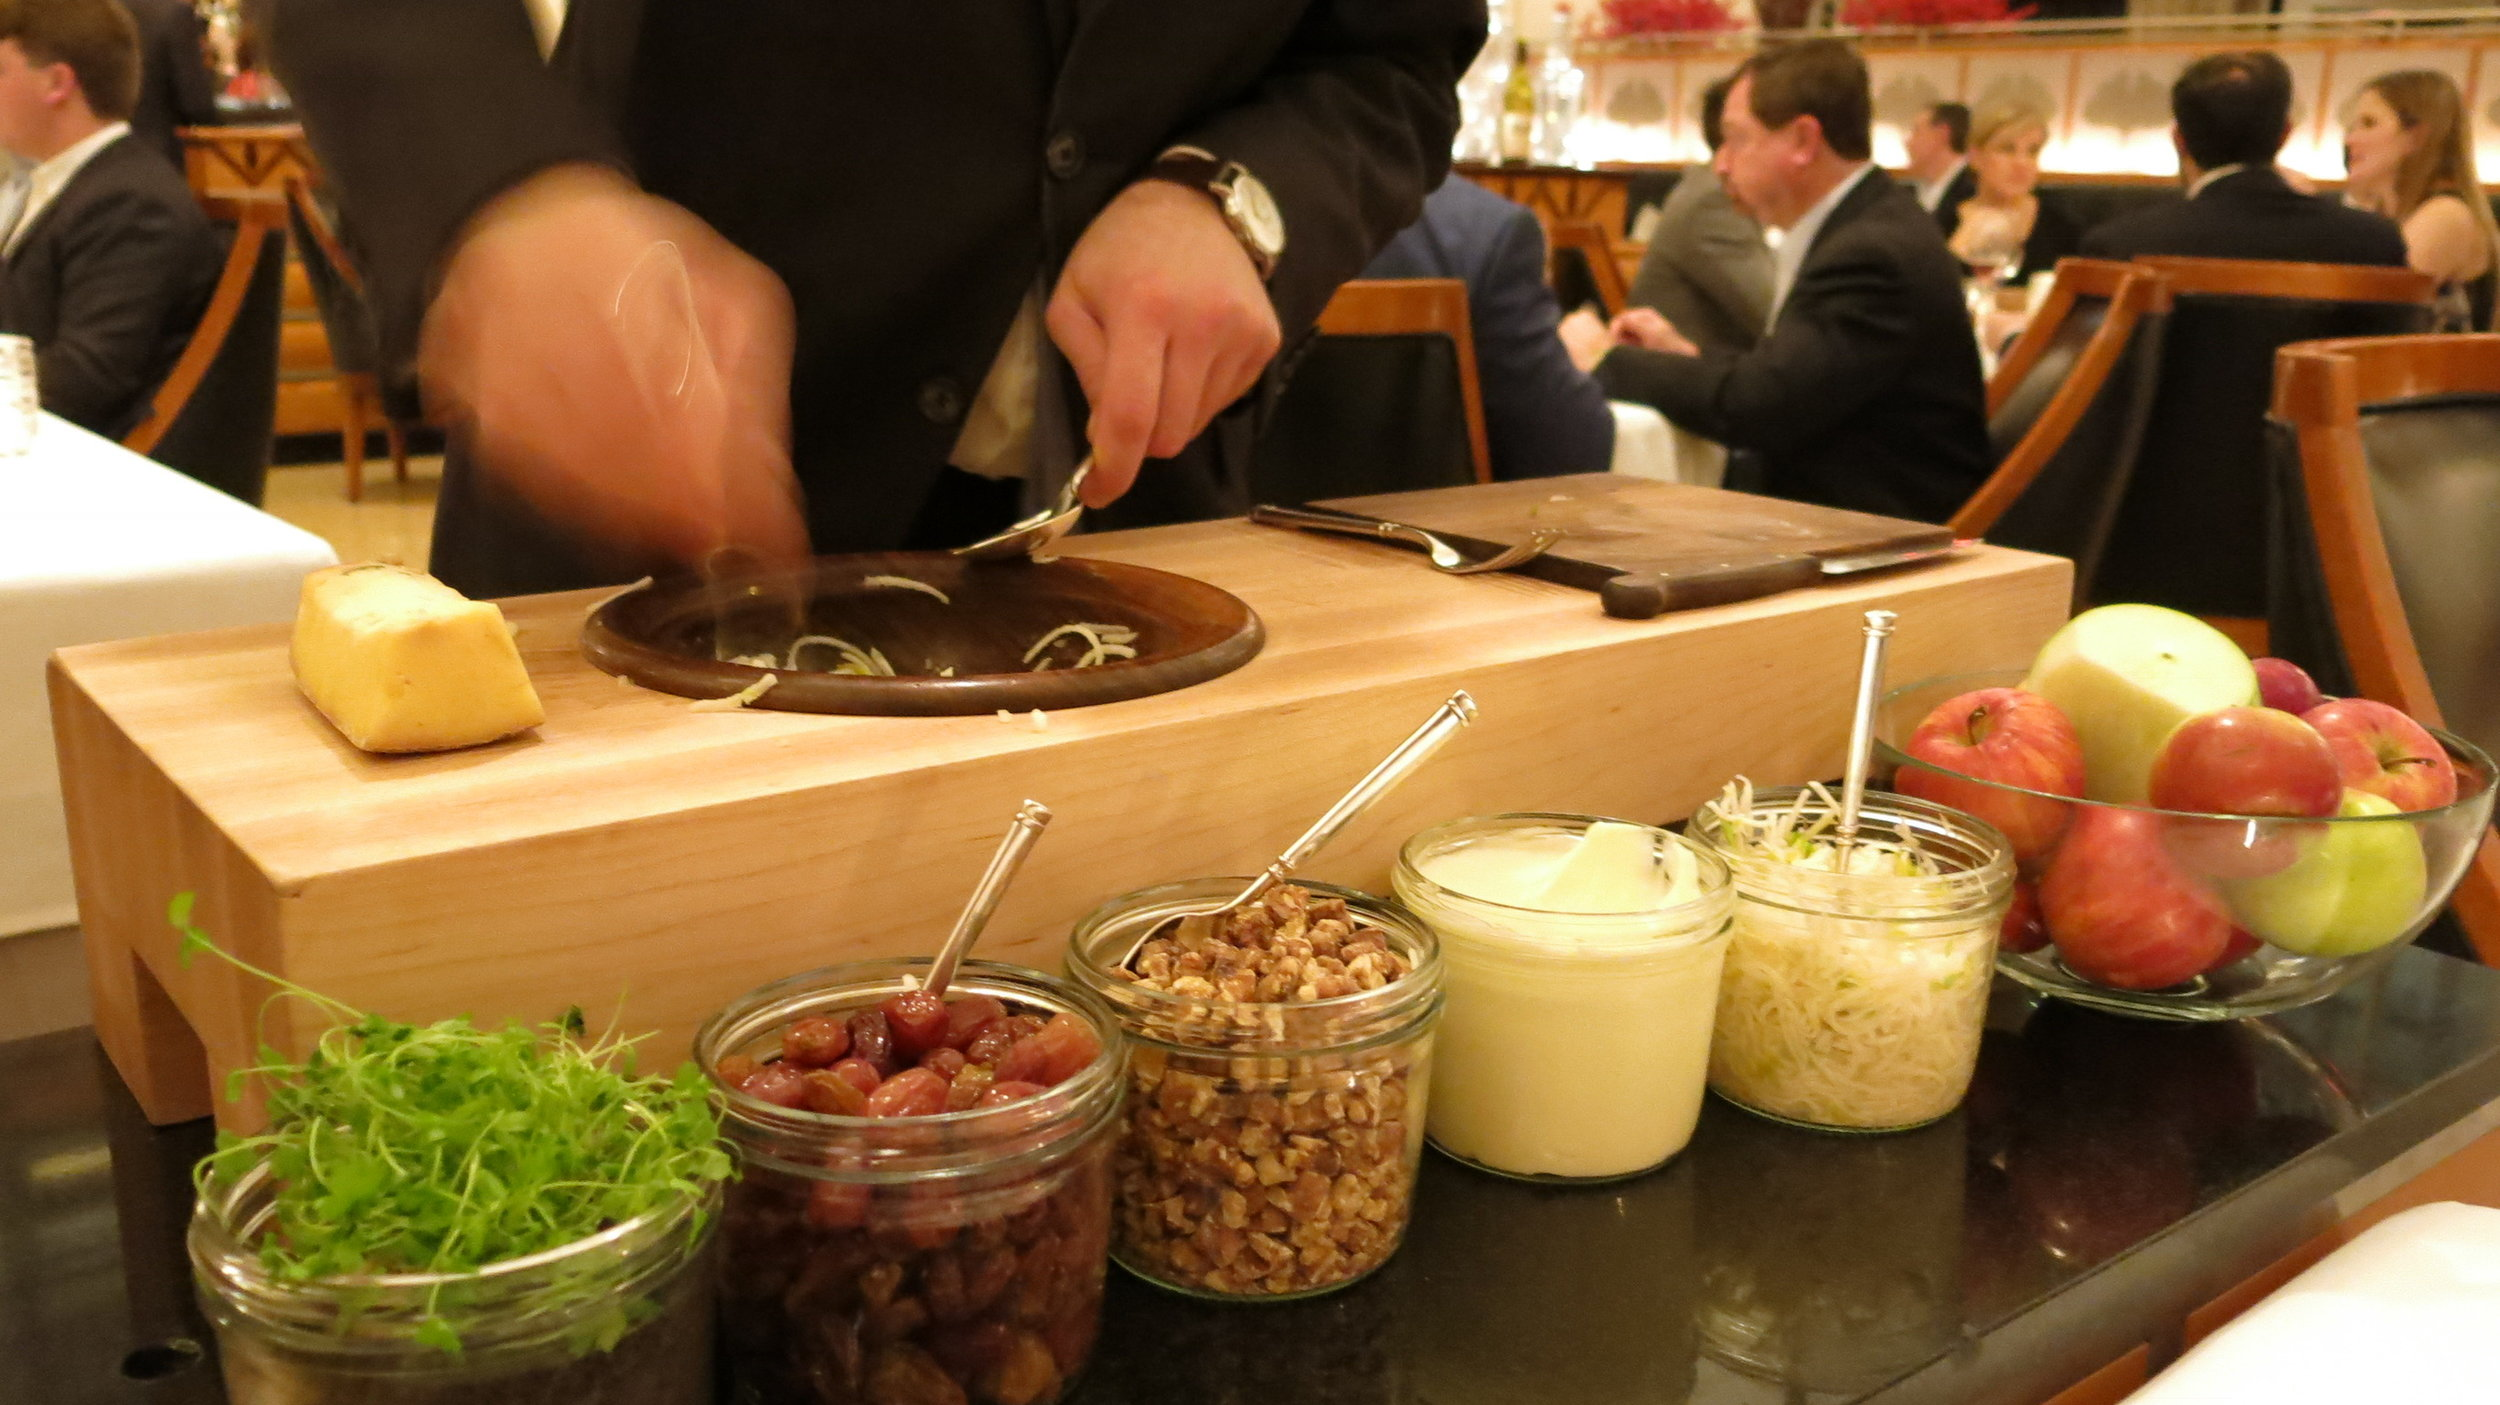 Prepping the Waldorf Salad tableside